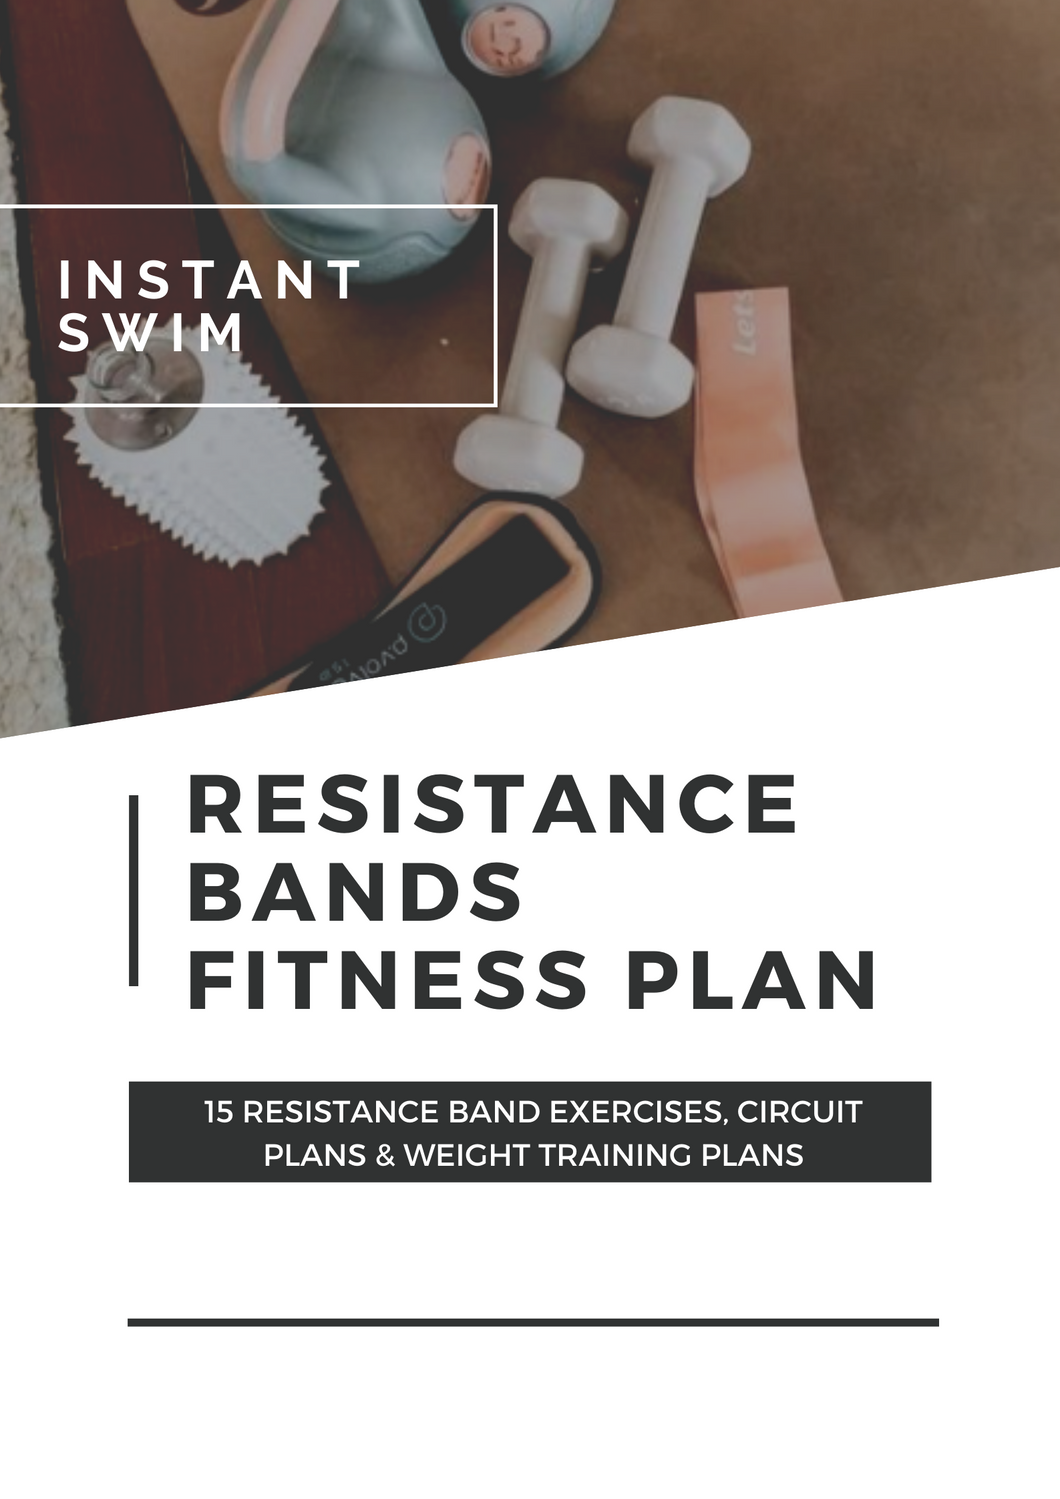 Resistance Band Fitness Plan